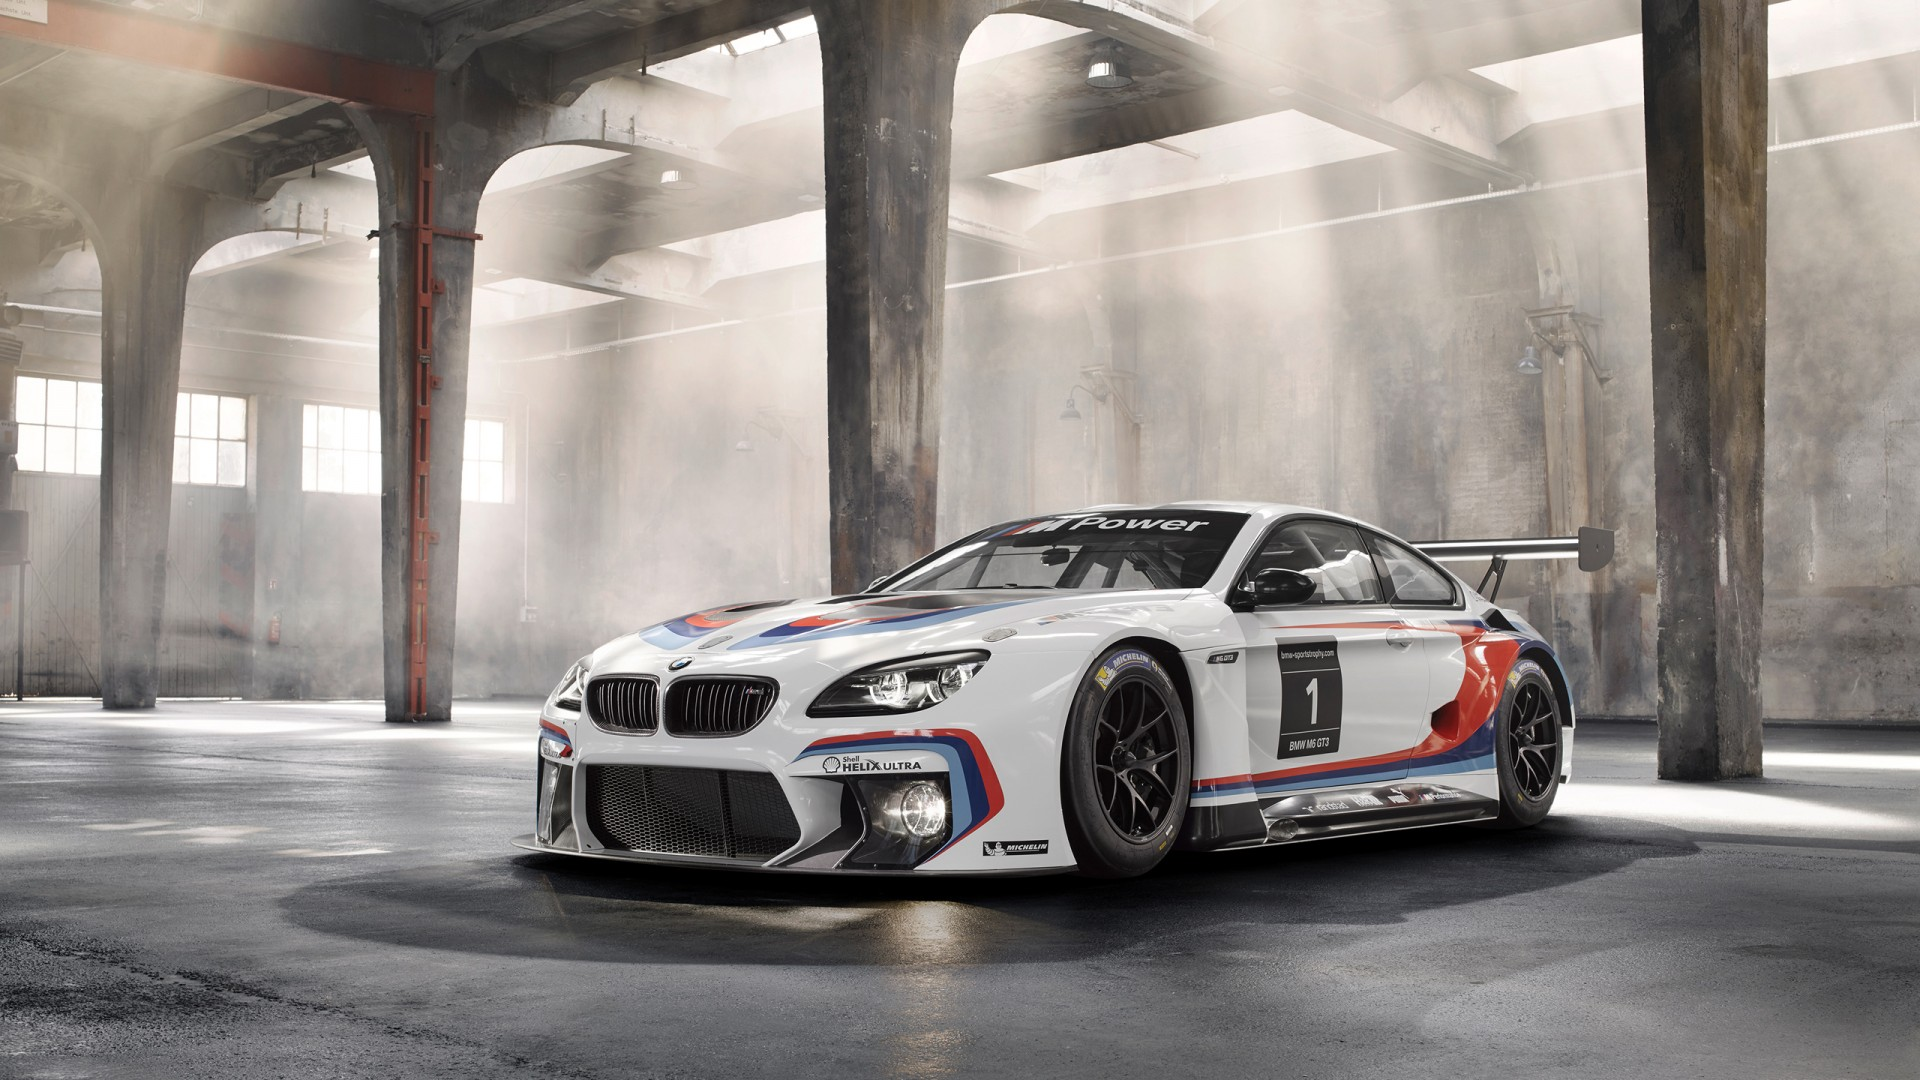 Gt Sport Wallpaper Iphone: 2015 BMW M6 GT3 F13 Sport Wallpaper